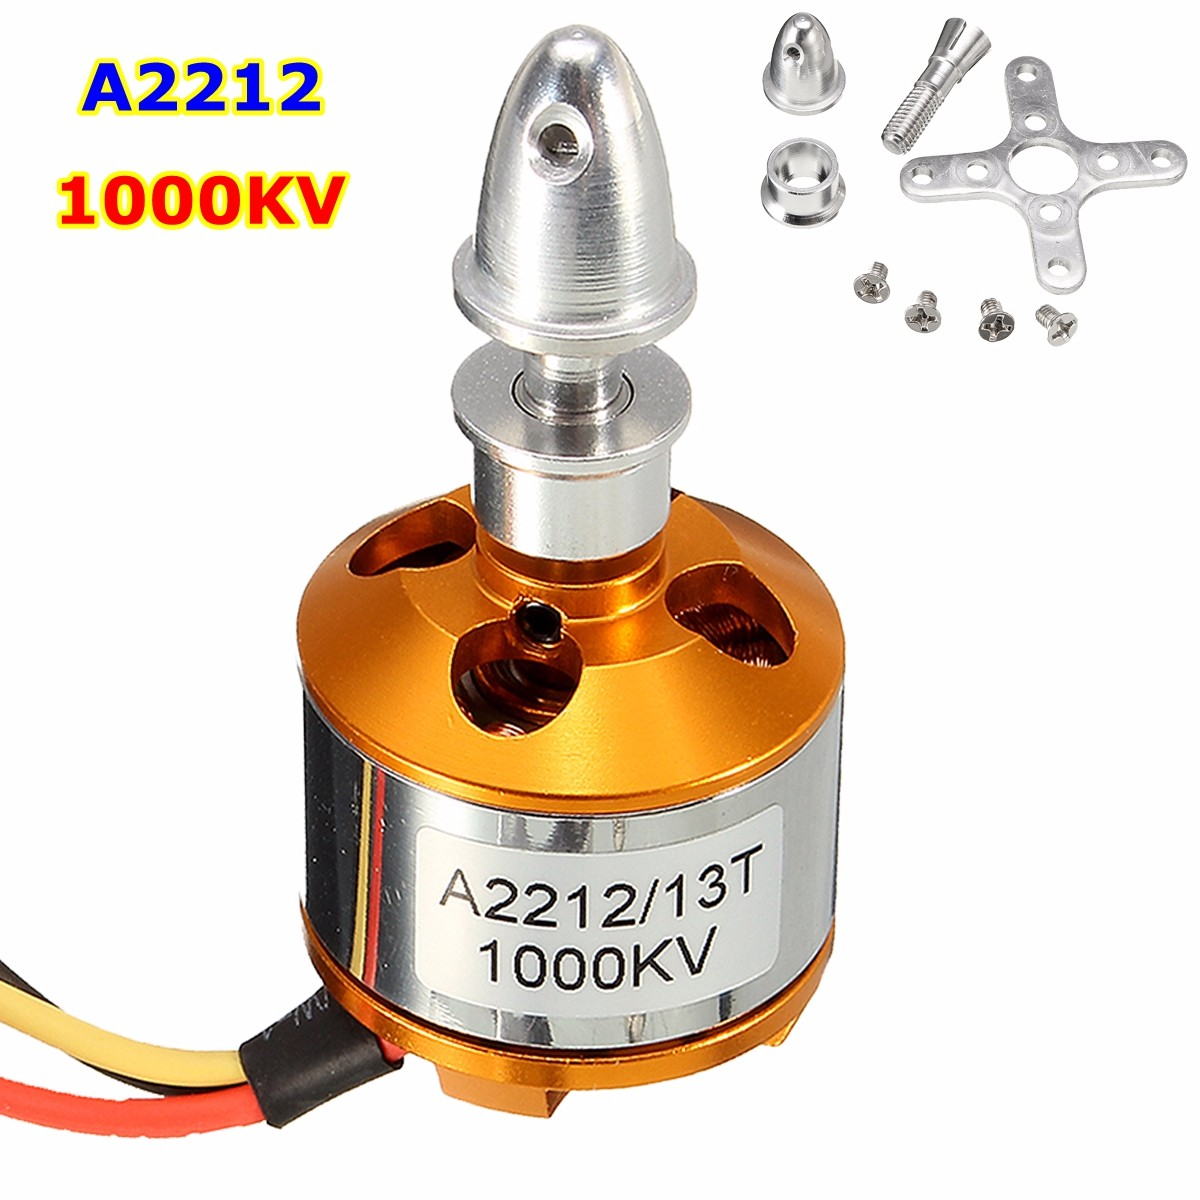 1000Kv A2212 Brushless Drone Outrunner Motor For Aircraft Helicopter Quadcopter free shipping emp n3536 1400kv 1000kv brushless motor outrunner motor for fpv quadcopter drone better than xxd a2814